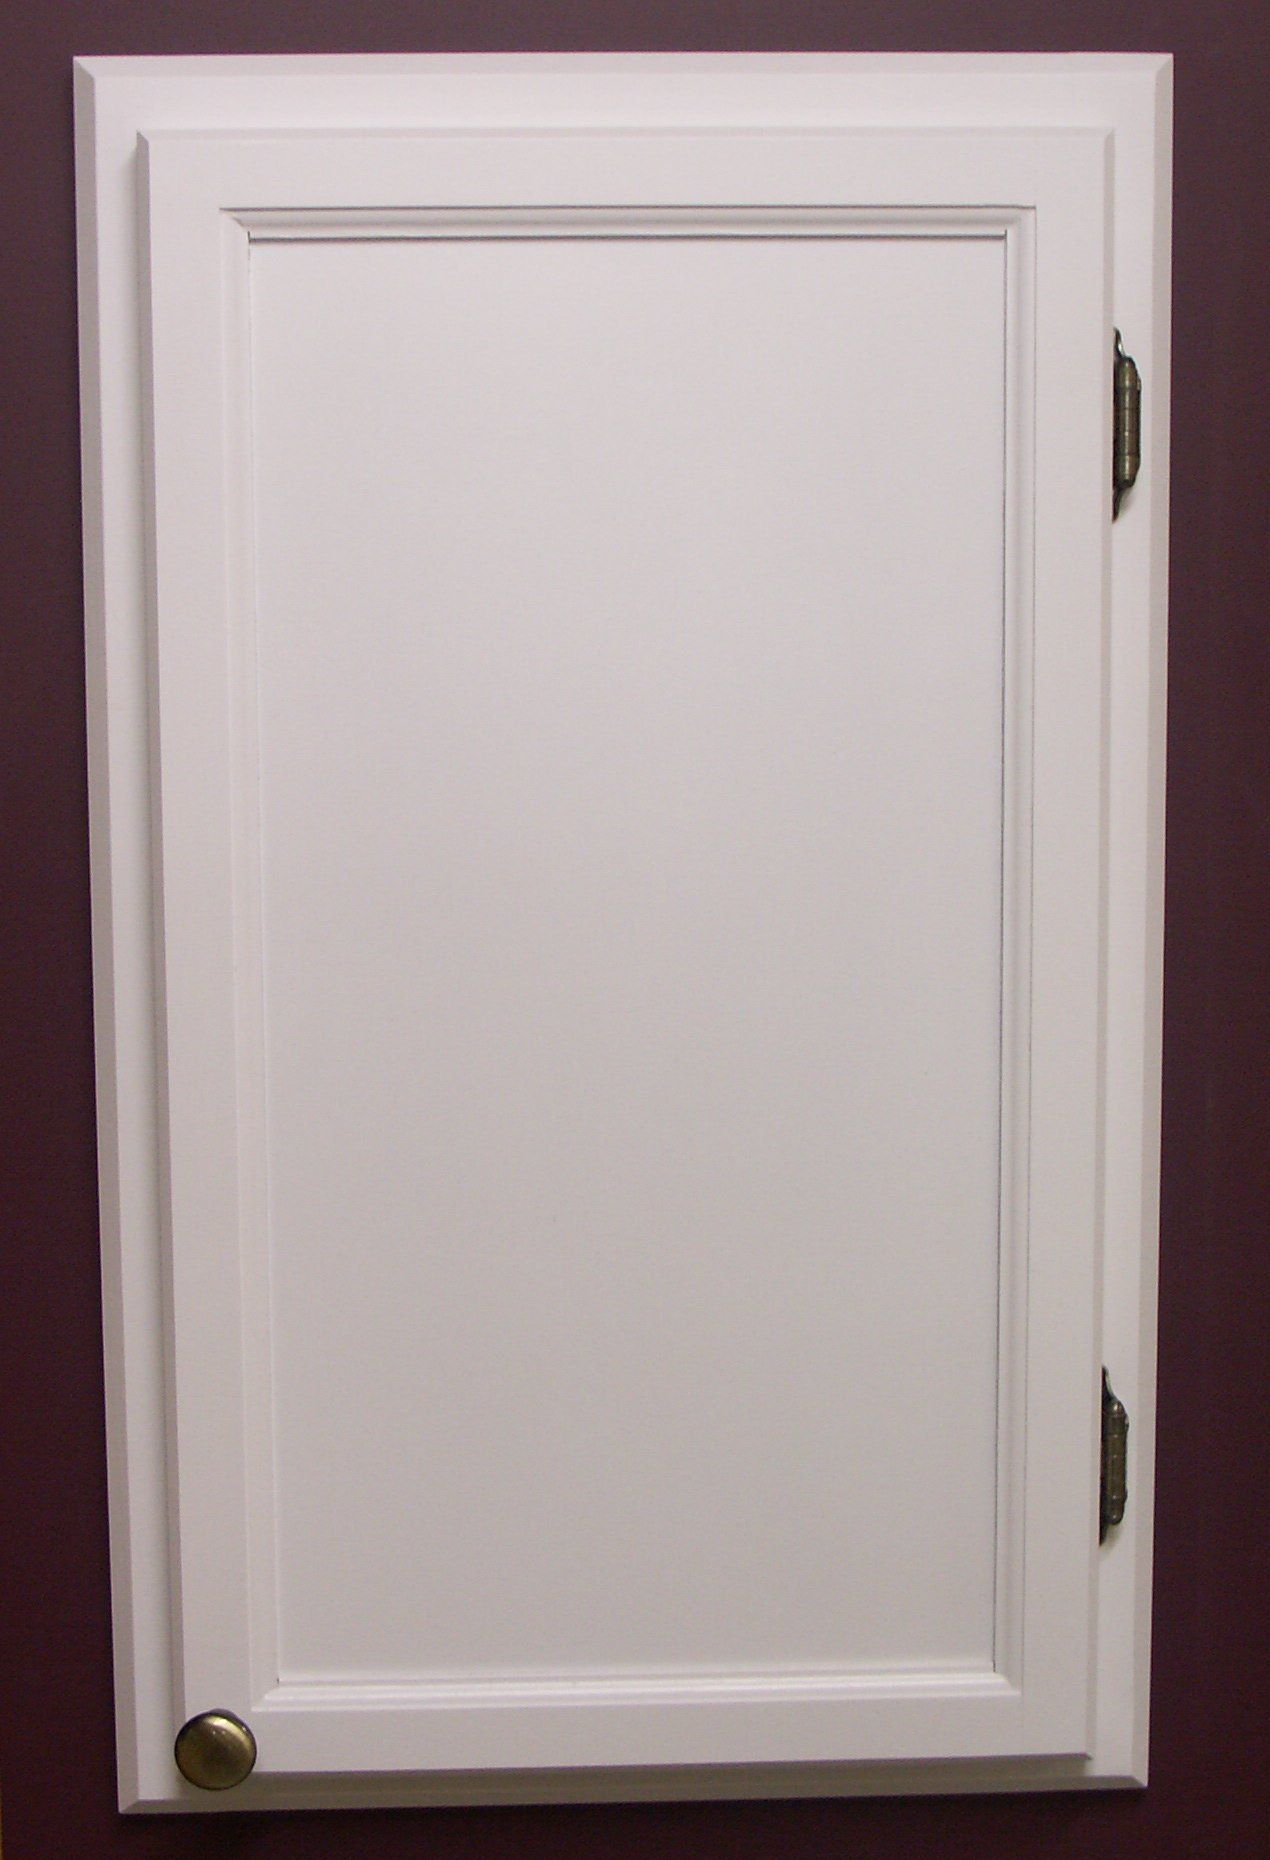 Acc3 solid wood custom size access panel frame and door